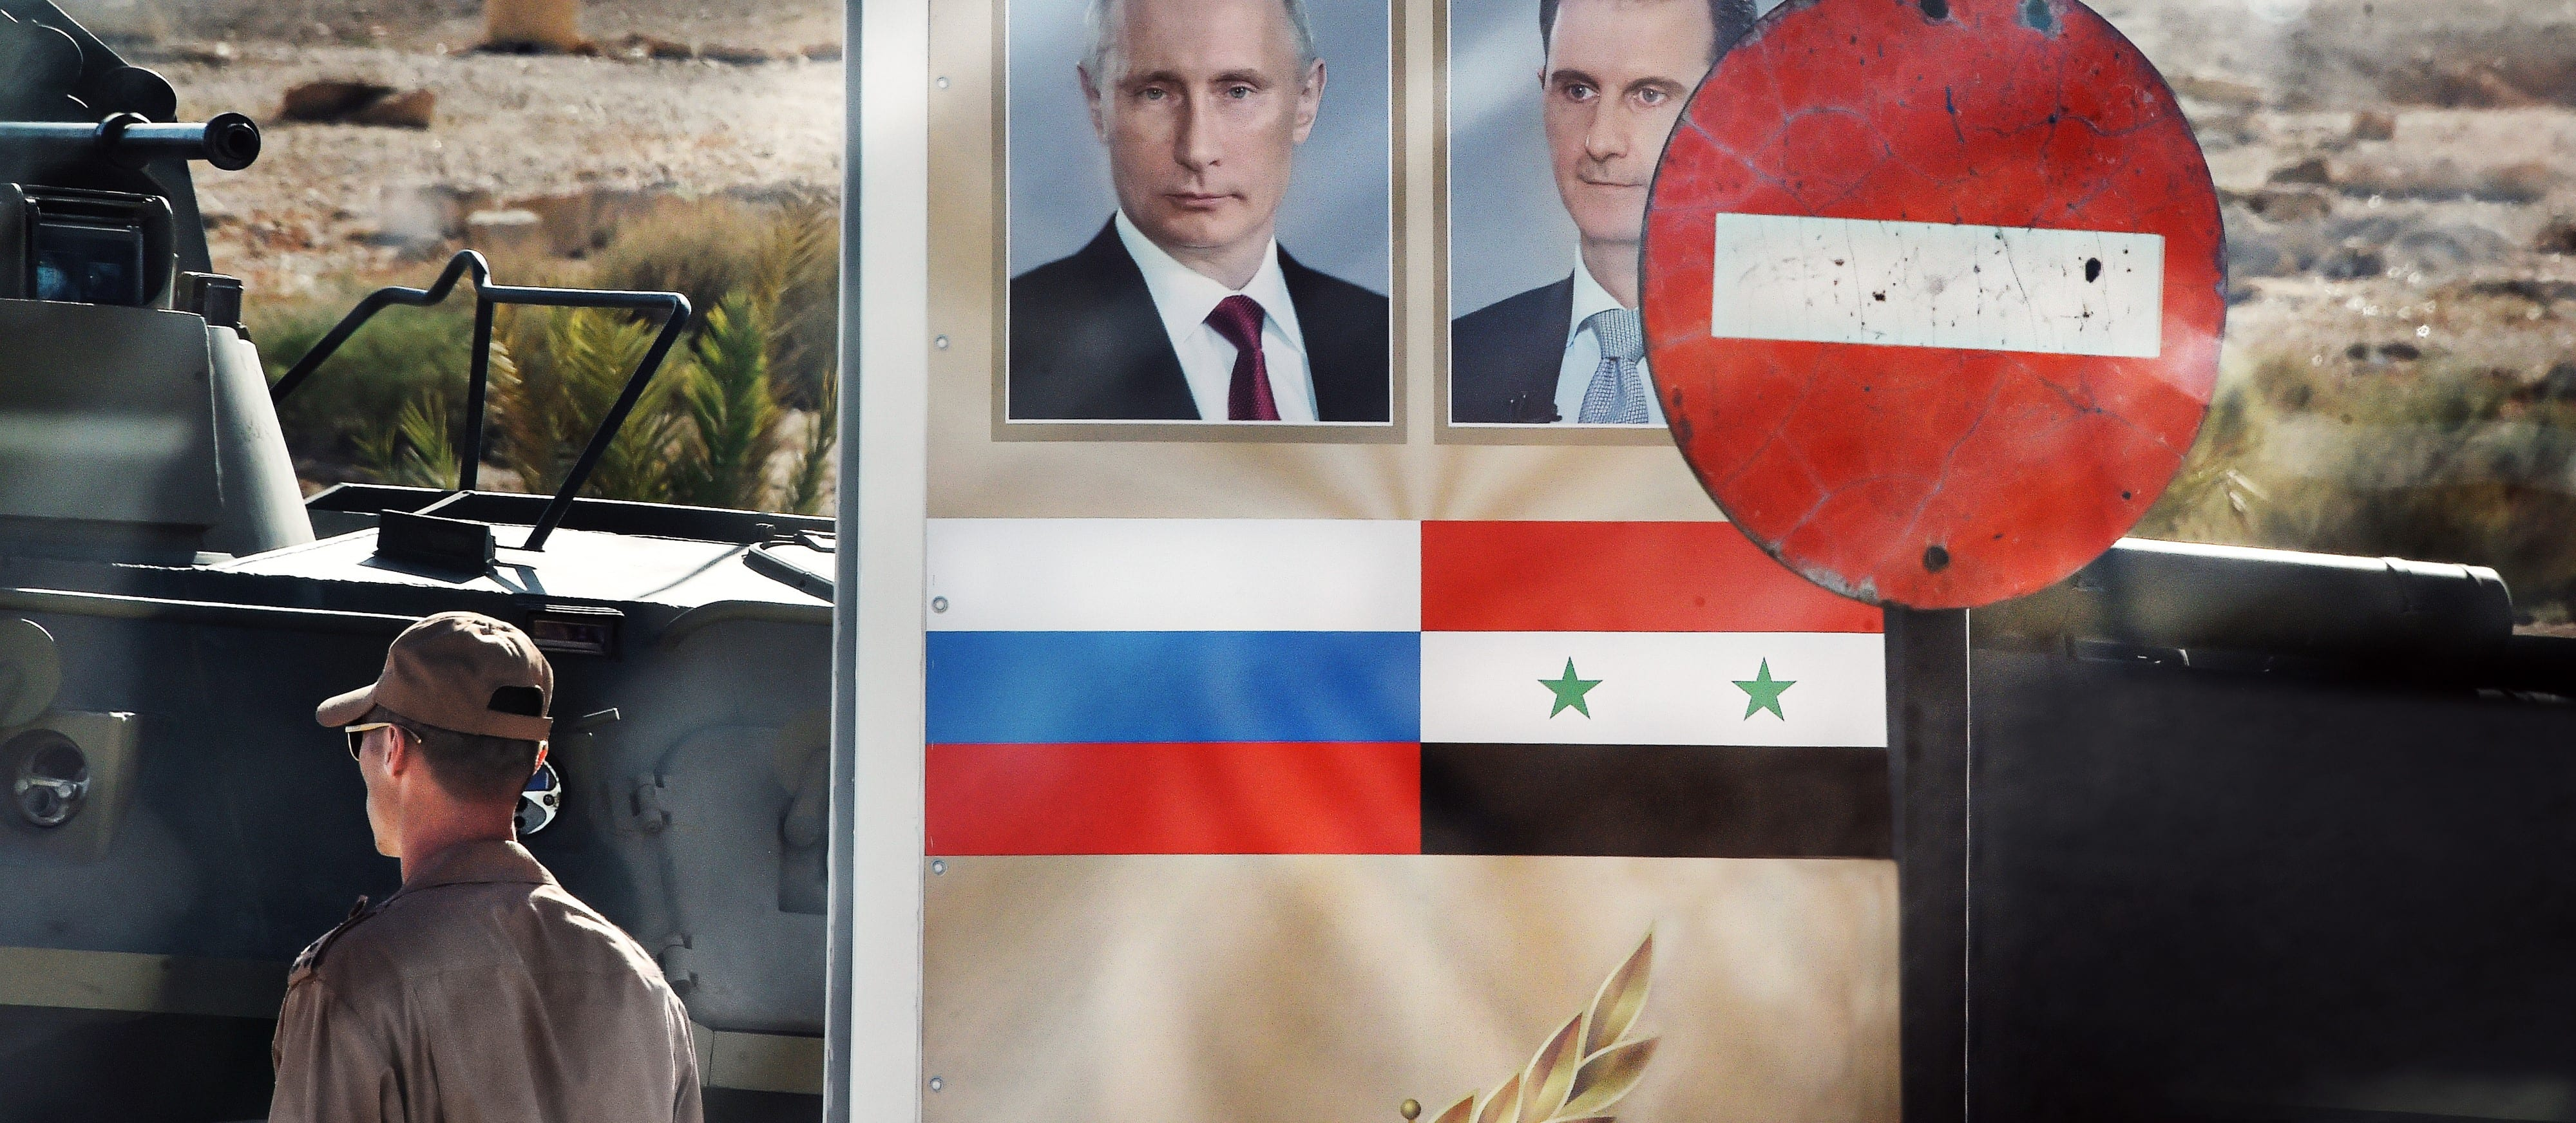 A sign featuring Russian President Vladimir Putin and Syrian President Bashar al-Assad in Palmyra, May 2016 (Photo: Getty Images/Kommersant Photo)